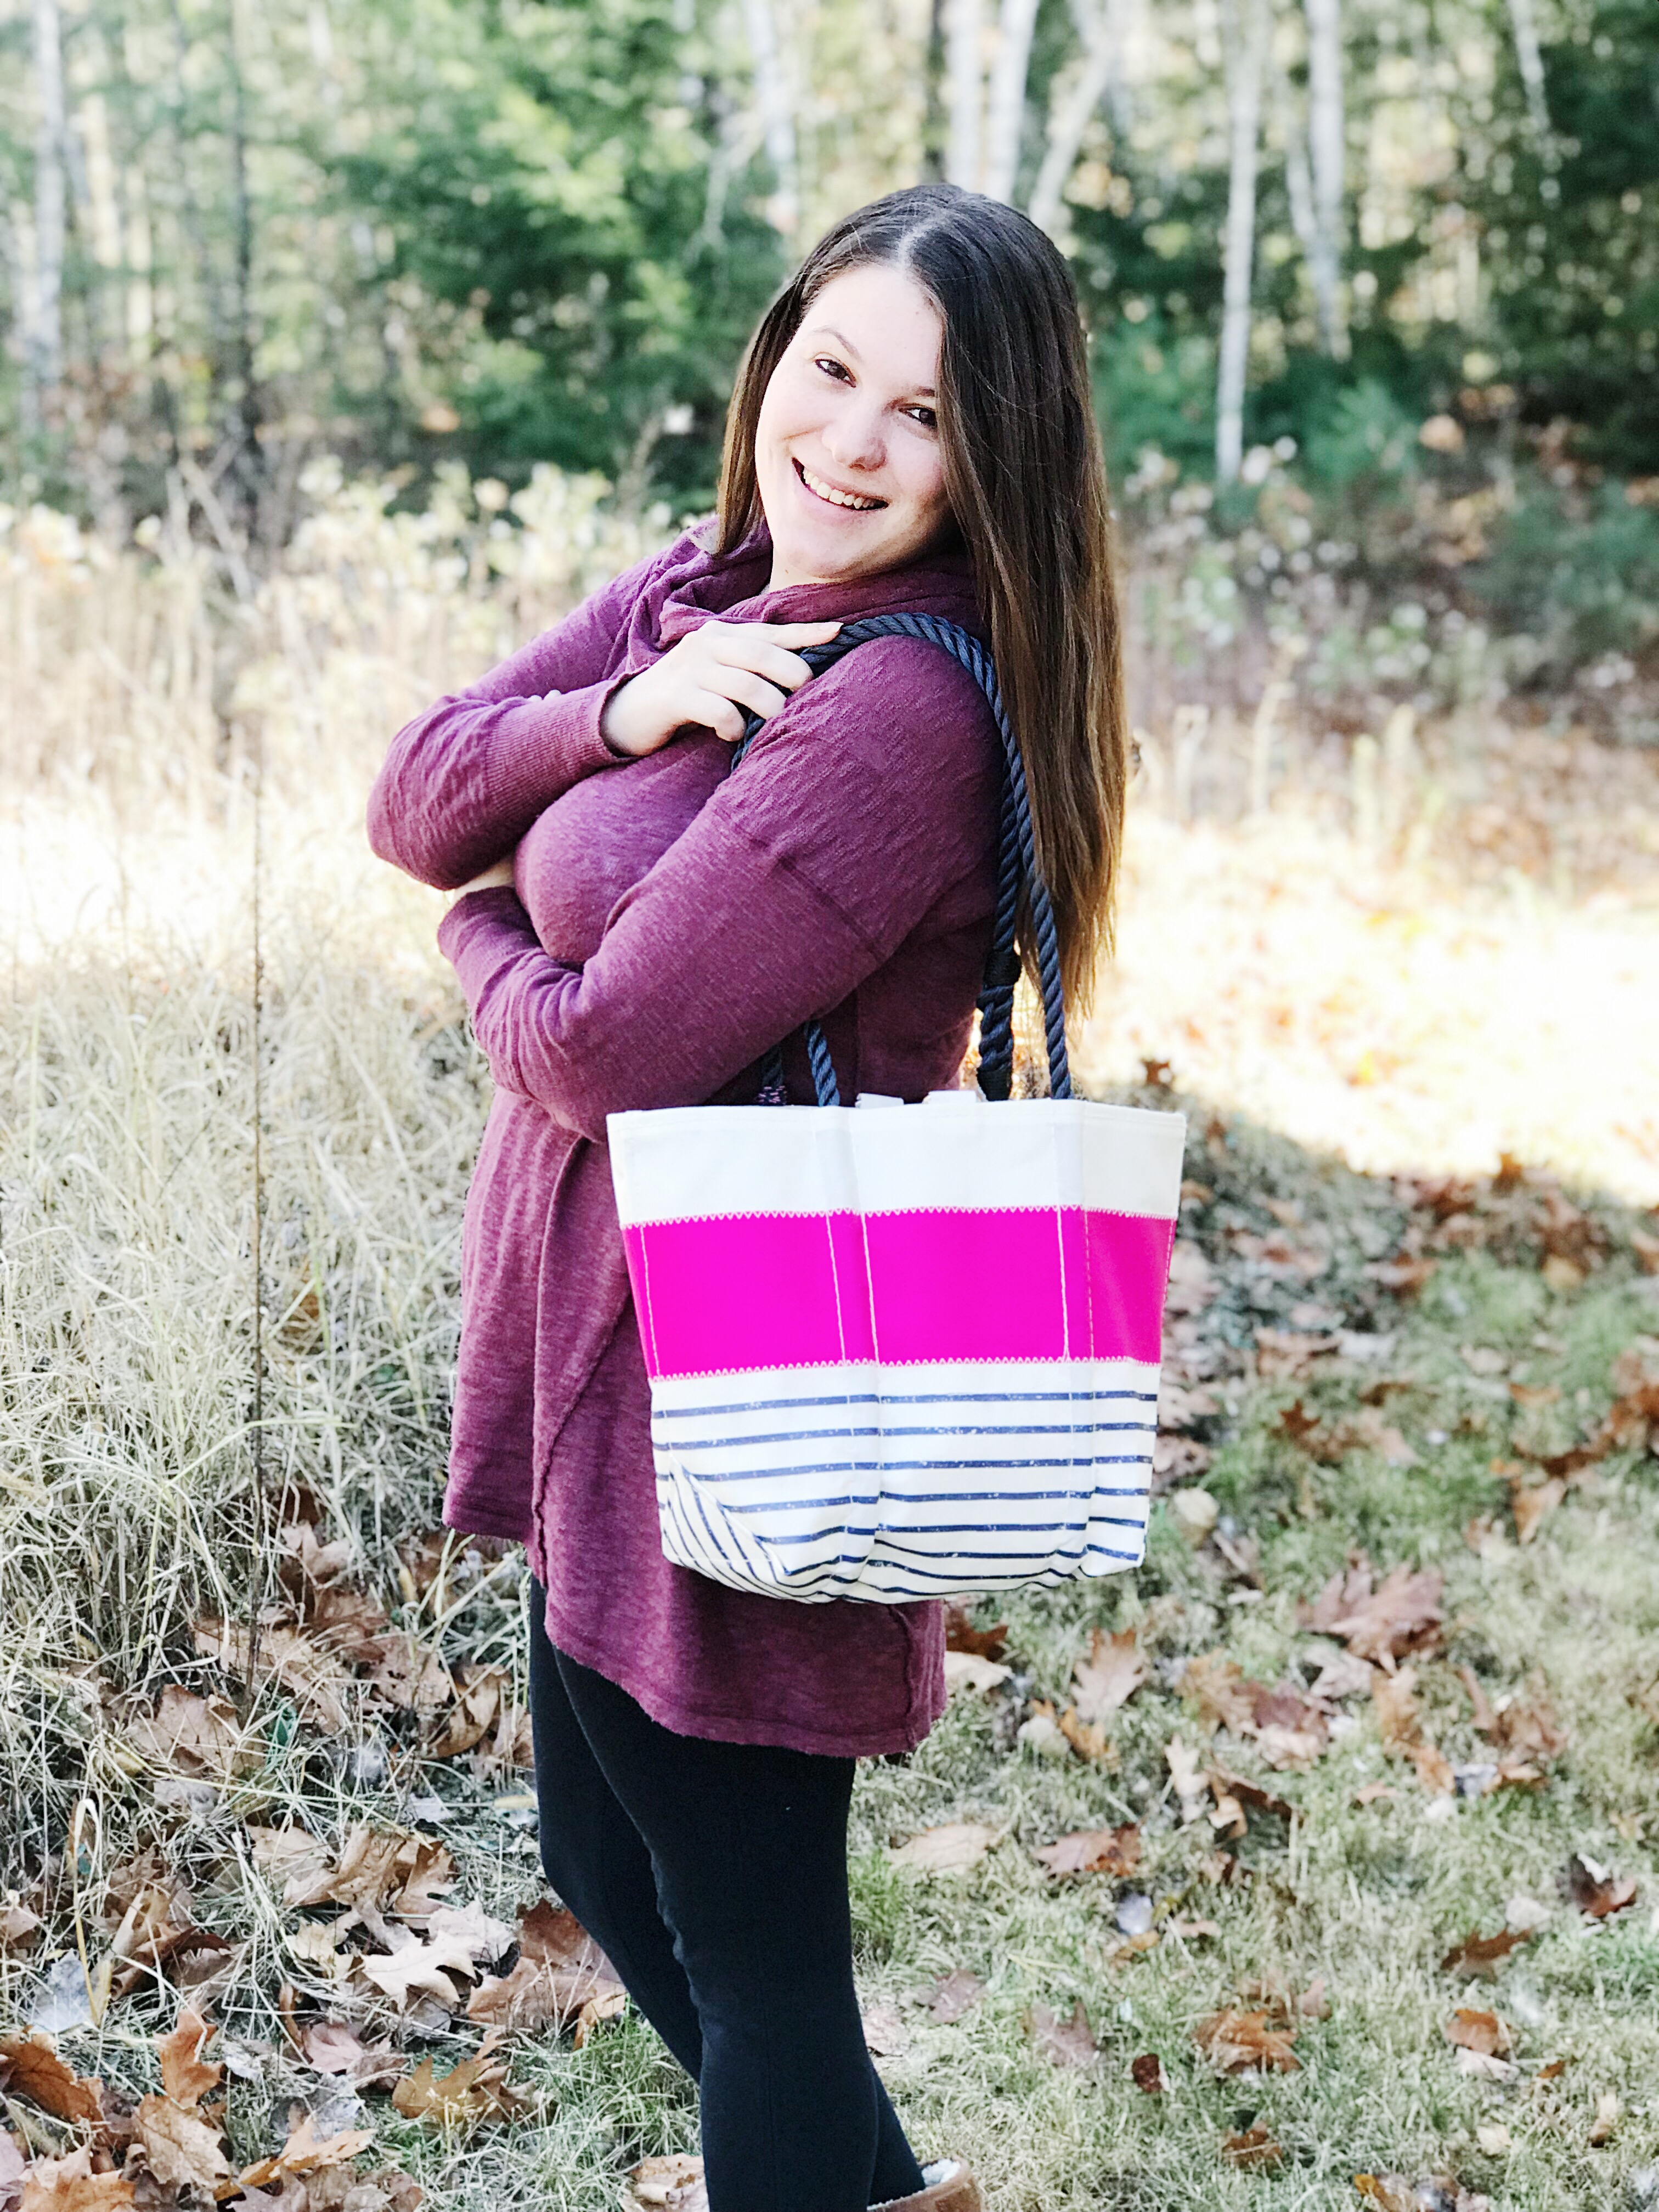 Sea Bags Nautical For A Cure Campaign